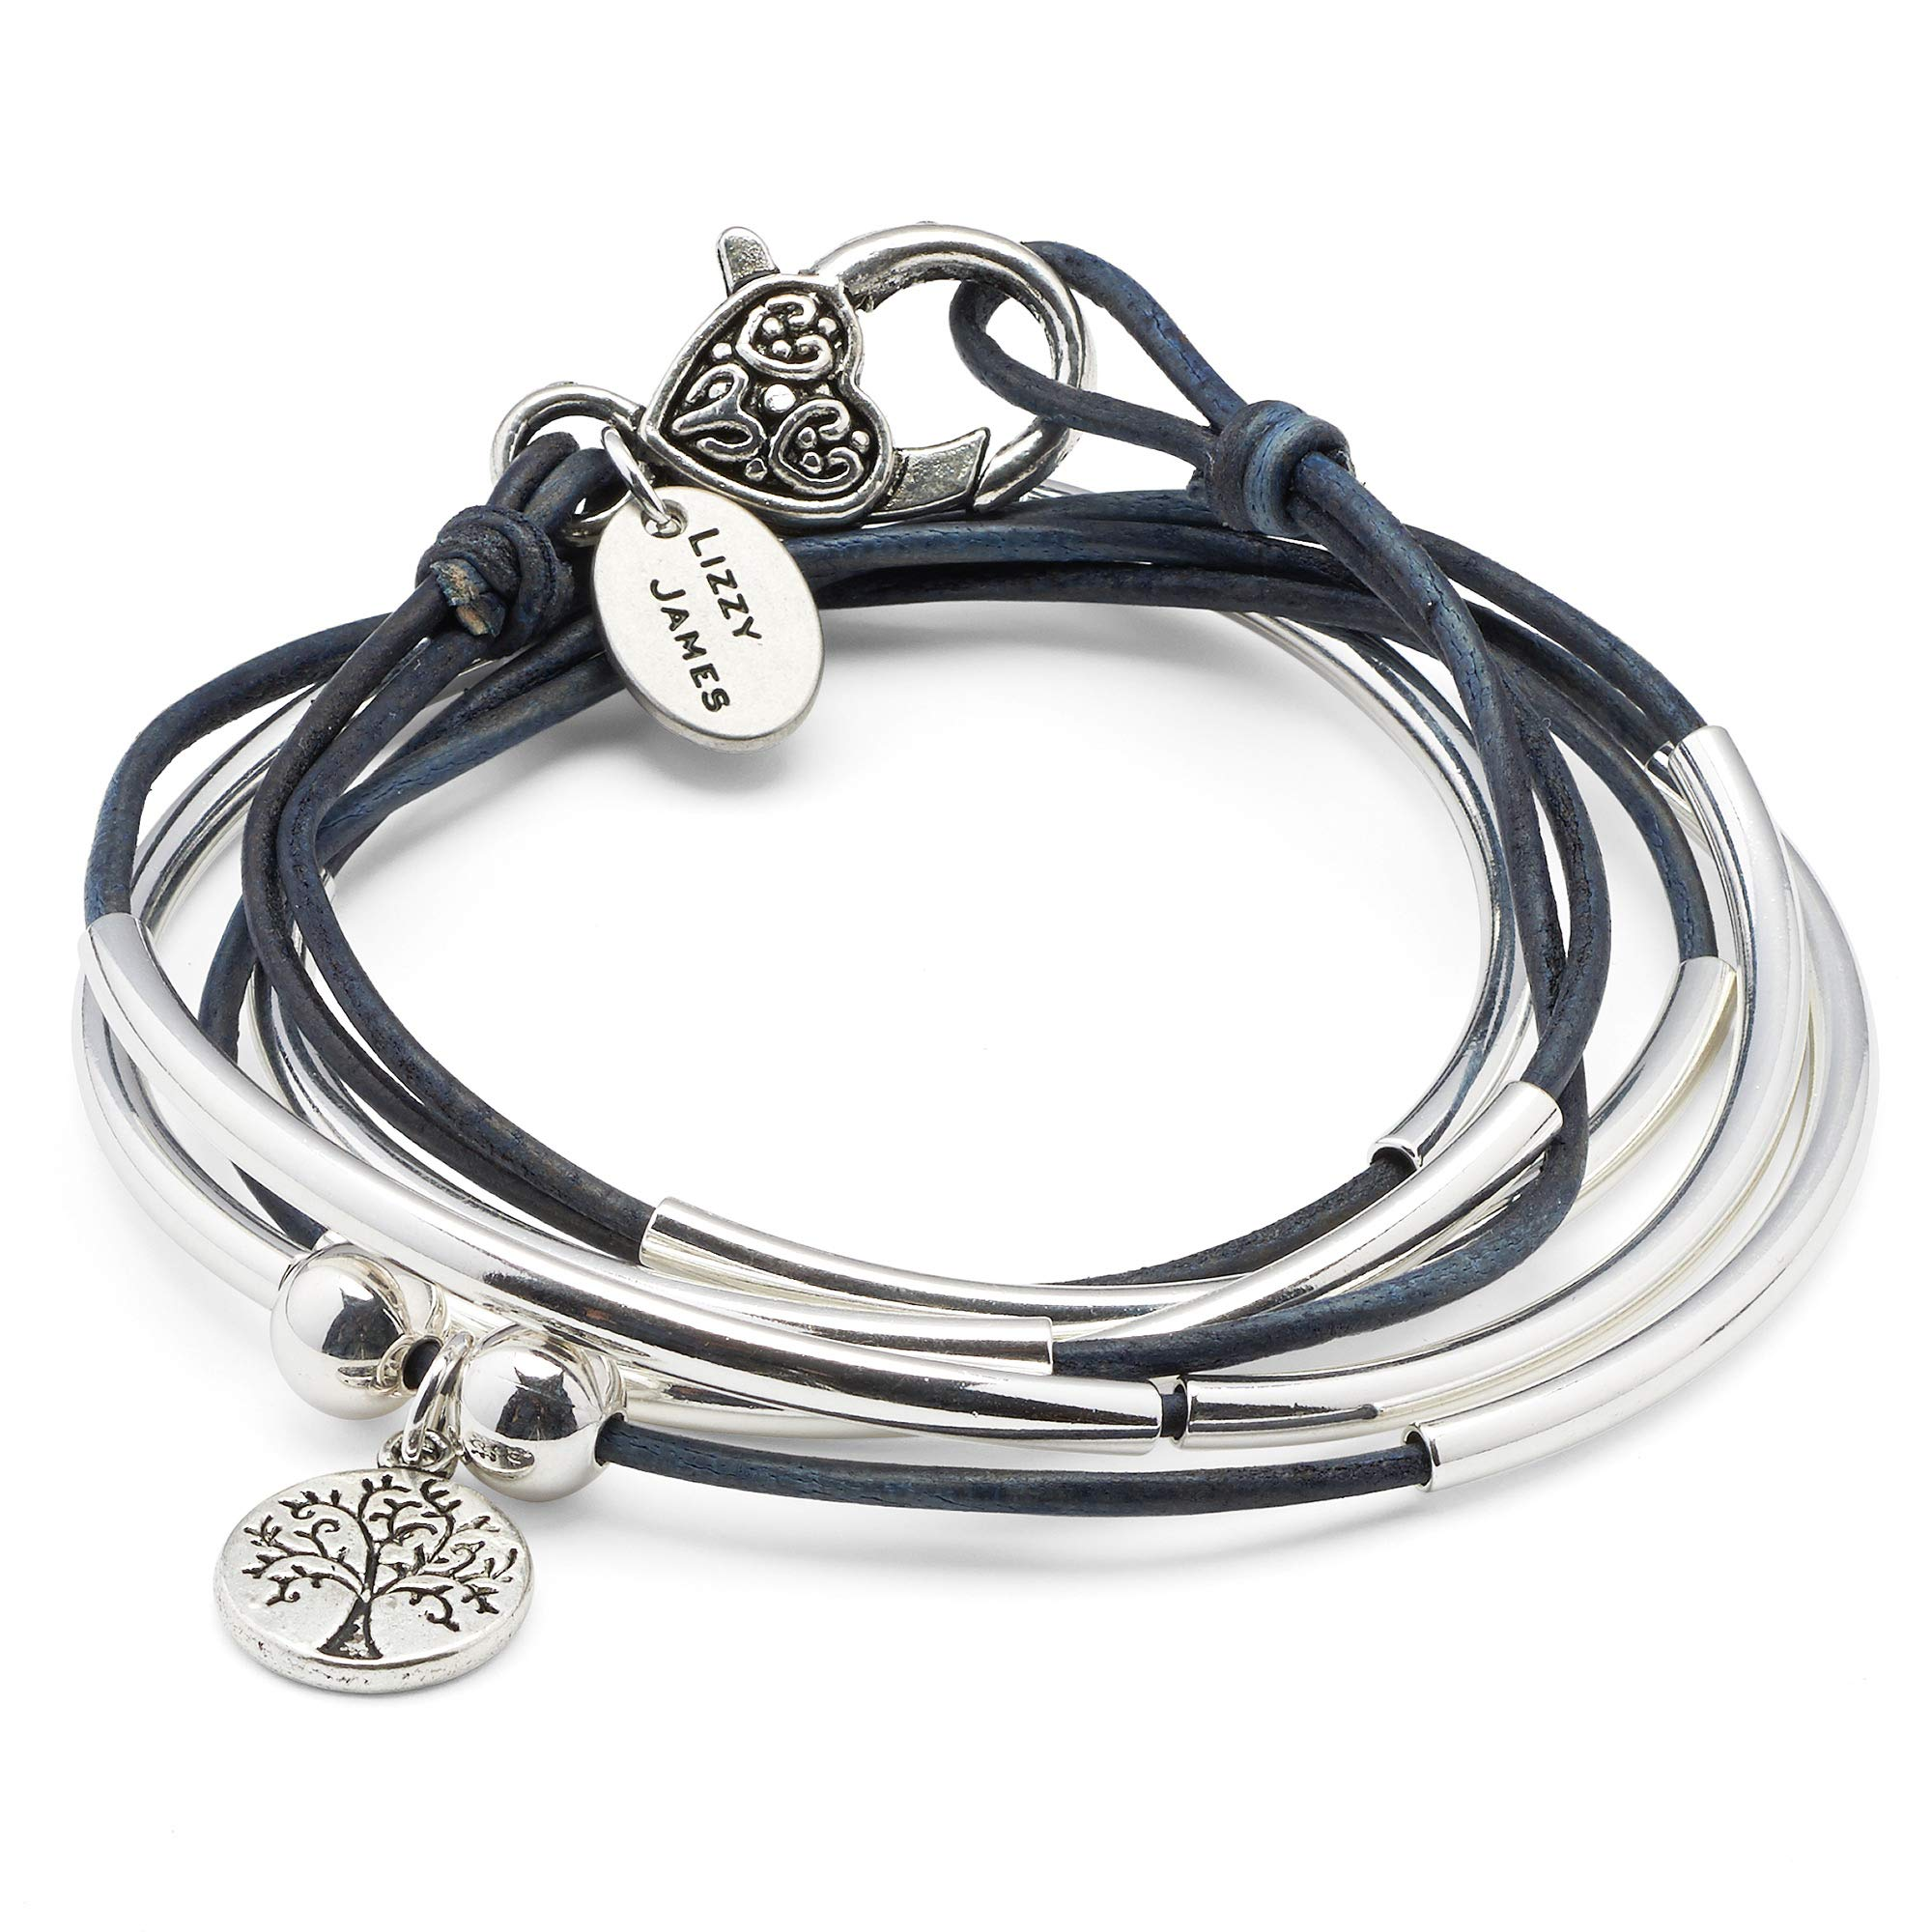 Lizzy James Girlfriend Silver Bracelet Necklace with Silver Tree of Life Charm in True Blue Leather (Medium) by Lizzy James